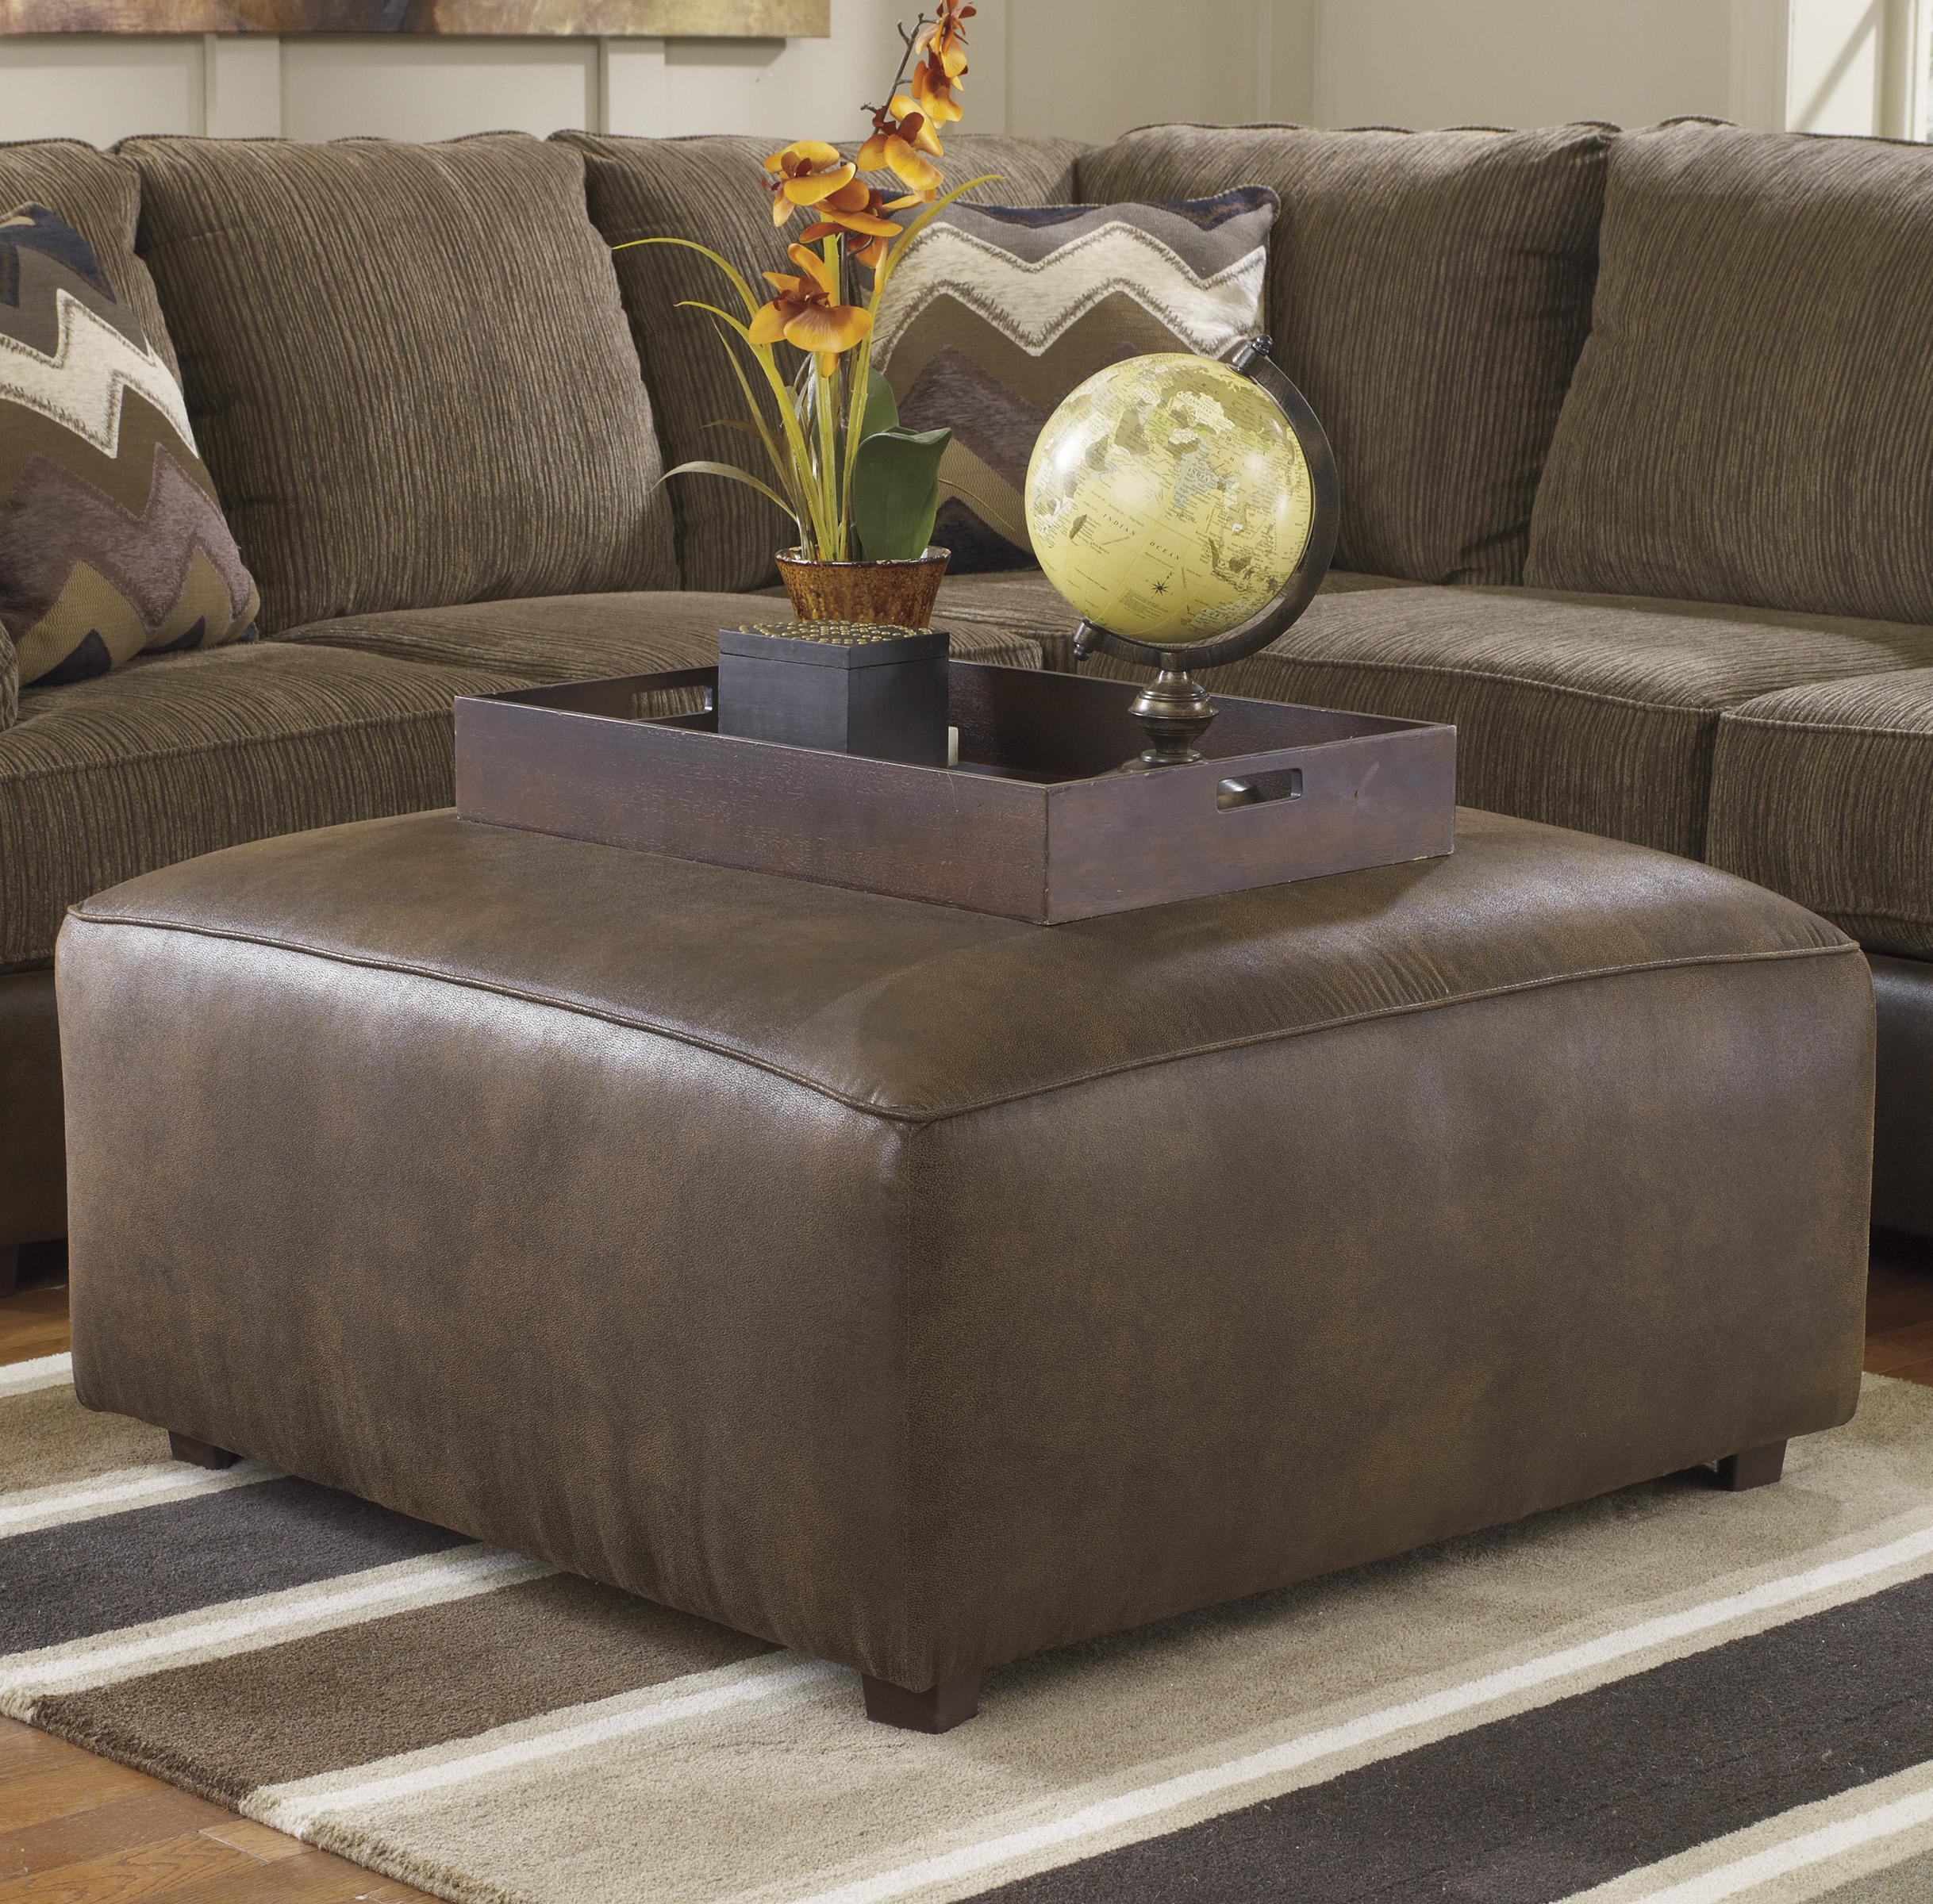 Benchcraft Cladio - Hickory Oversized Accent Ottoman - Item Number: 2410008